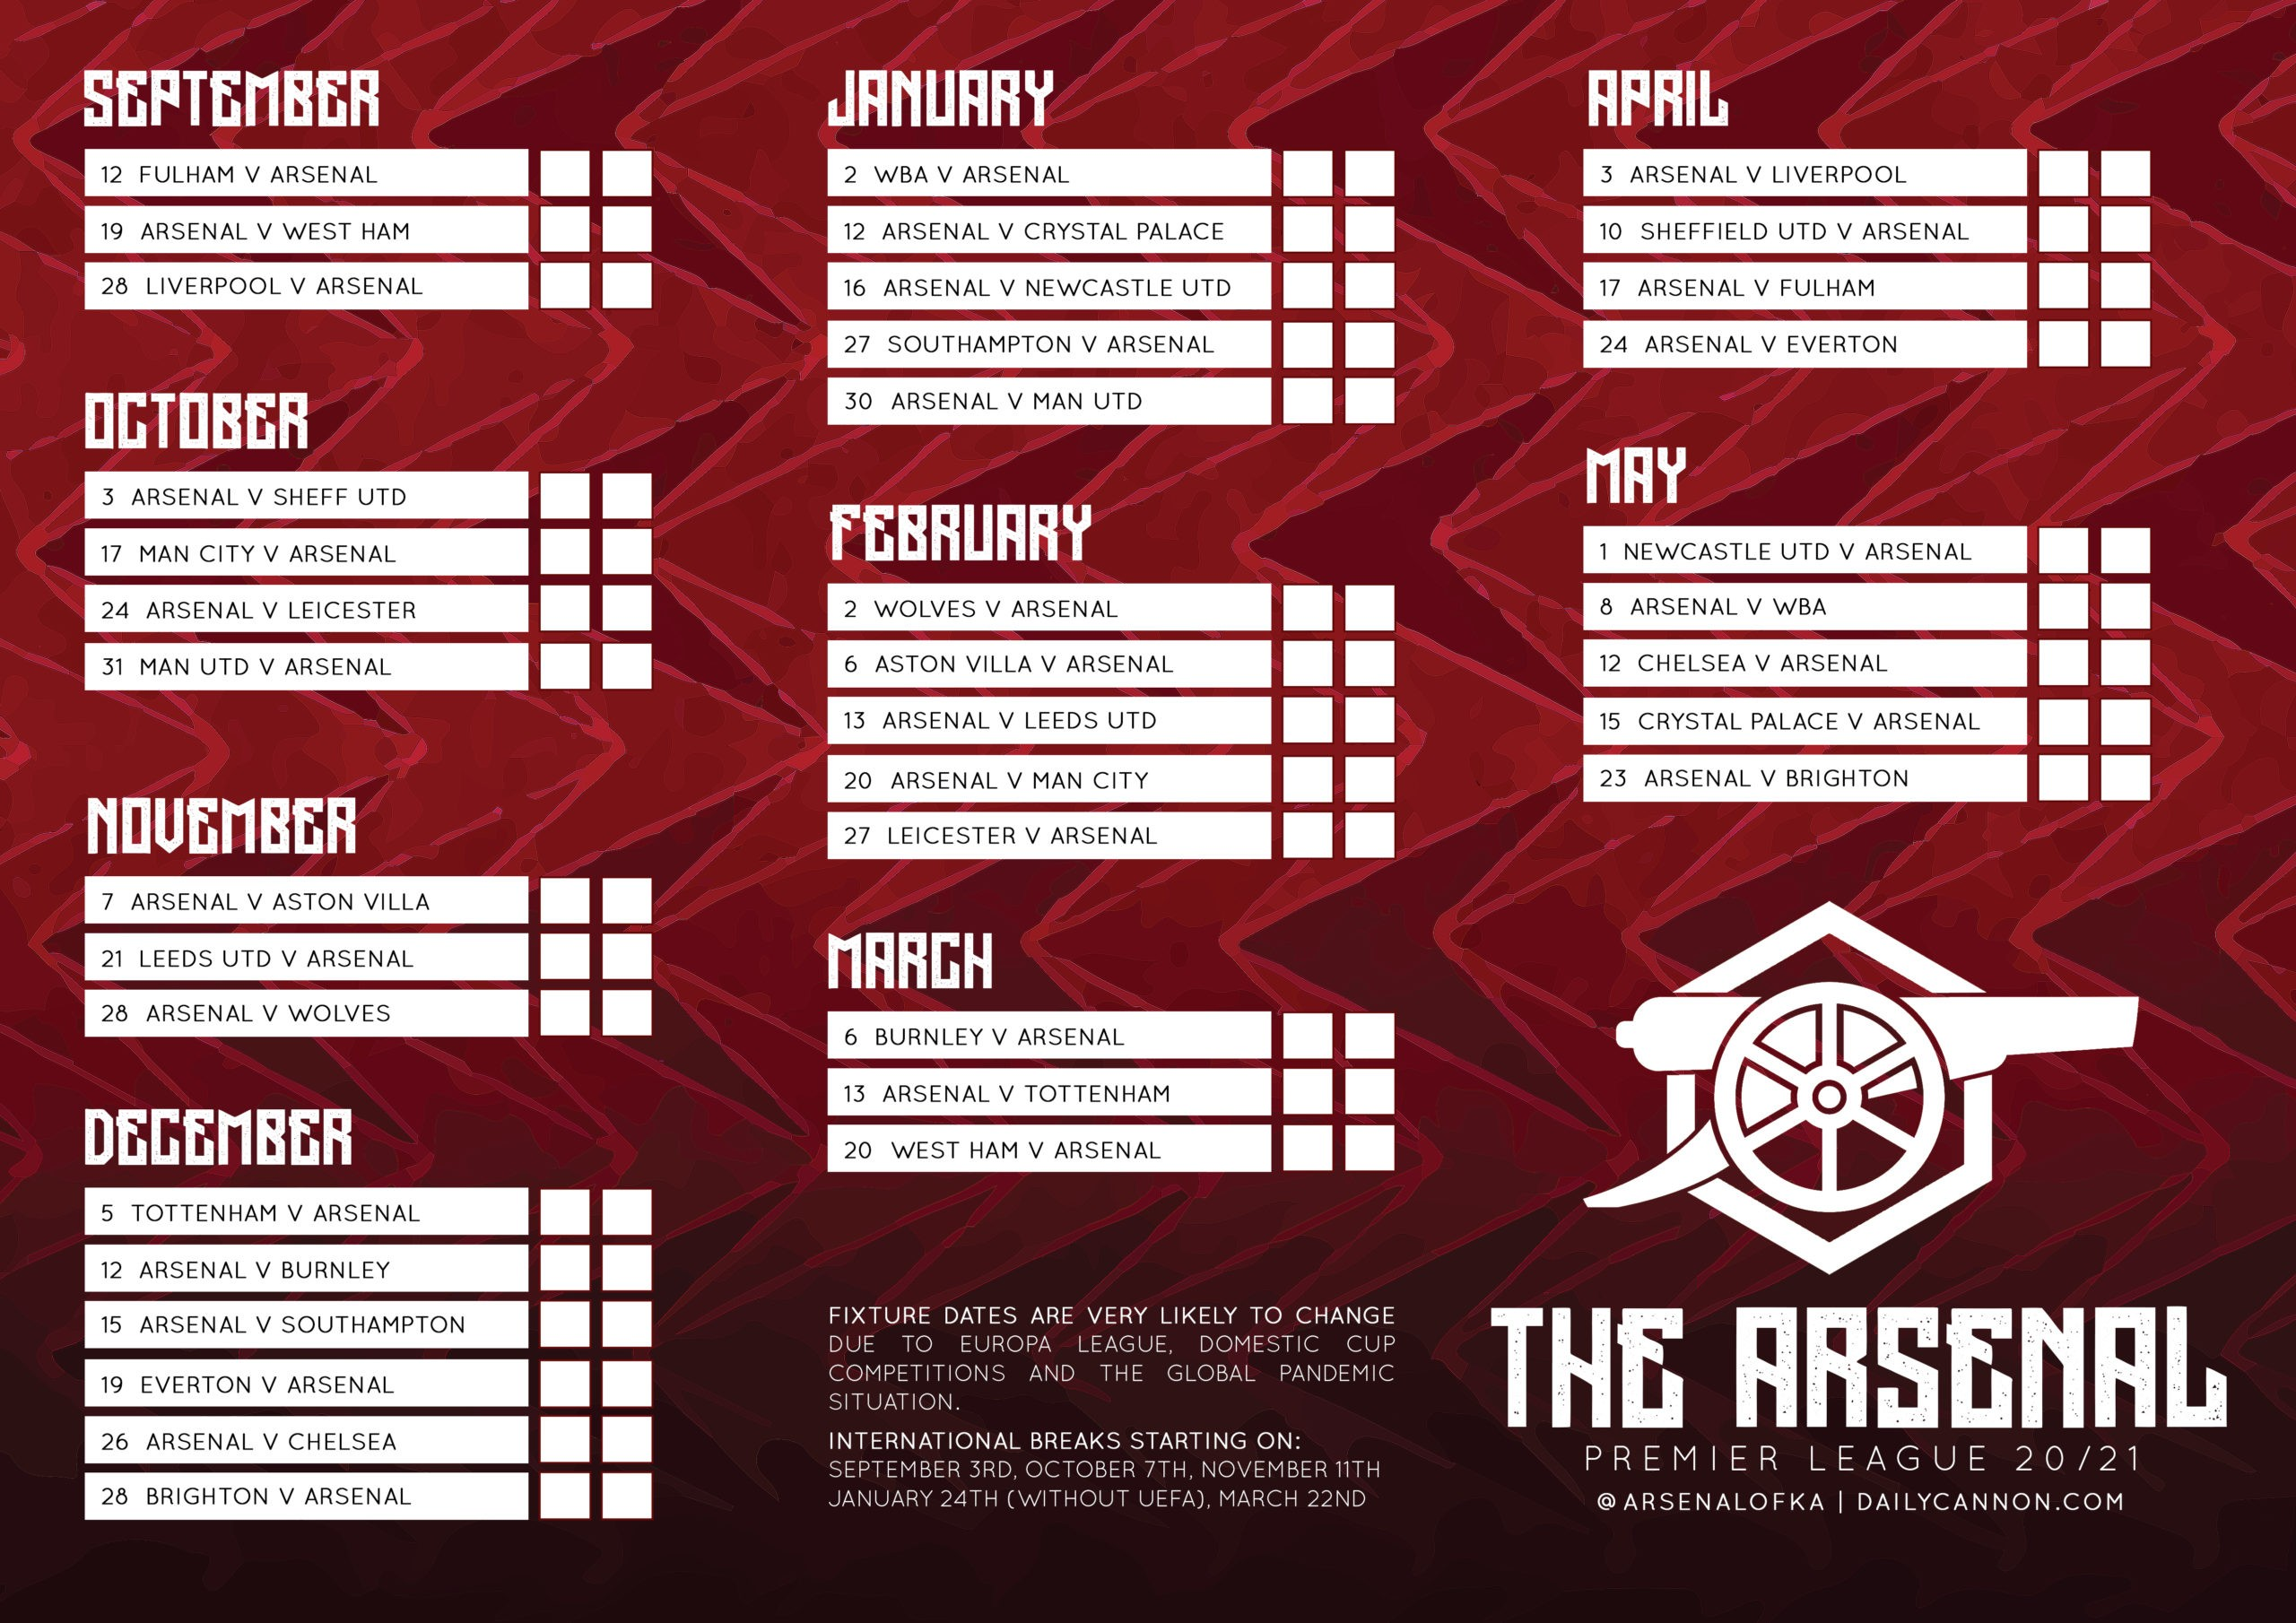 Free Arsenal Premier League 20 21 Fixtures Printables